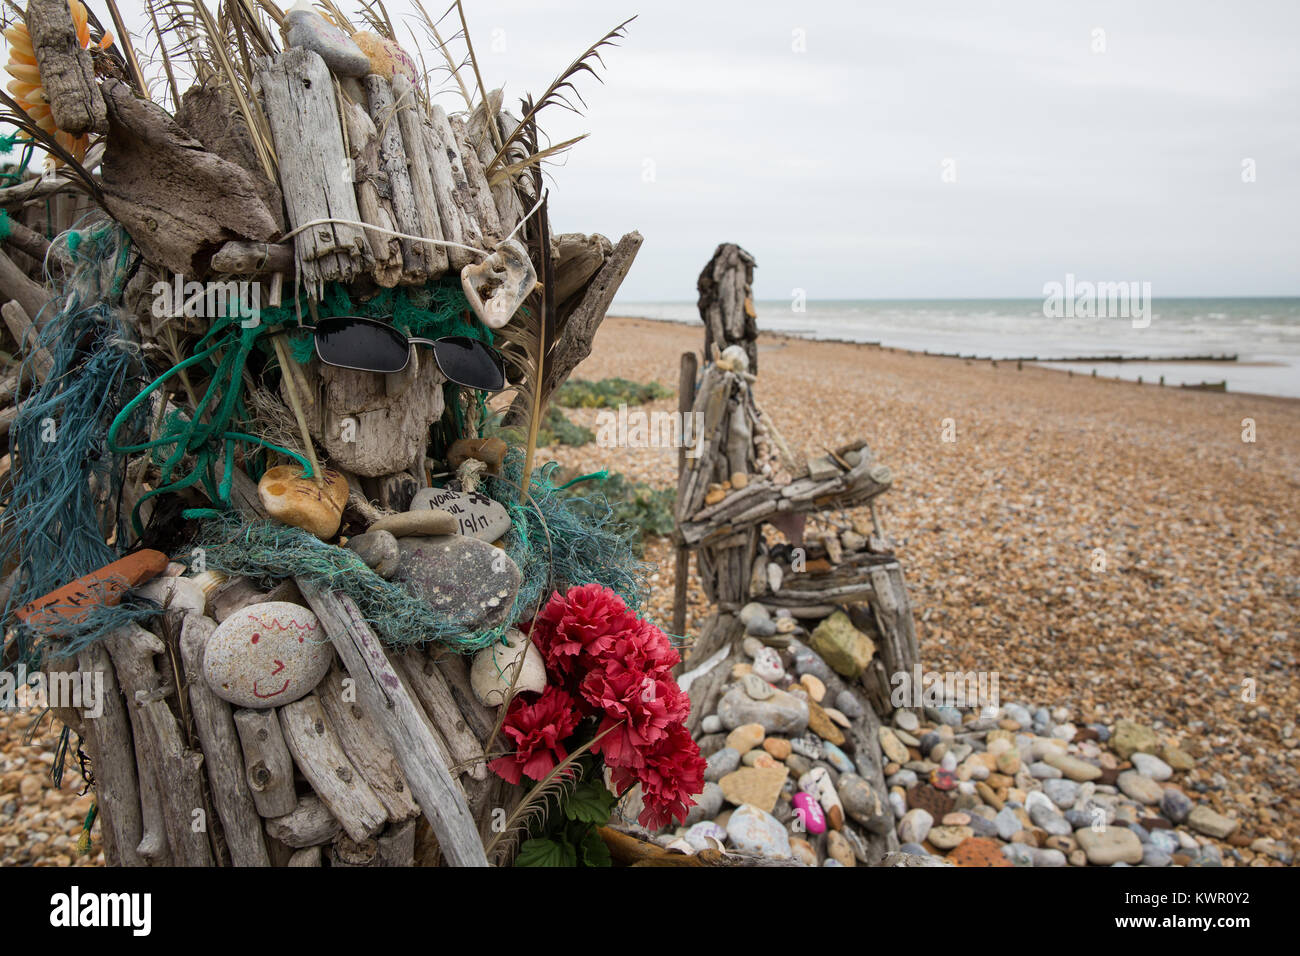 Cooden, UK. 3rd September, 2017. An artwork made from salvaged objects on the beach at Cooden, East Sussex. Stock Photo